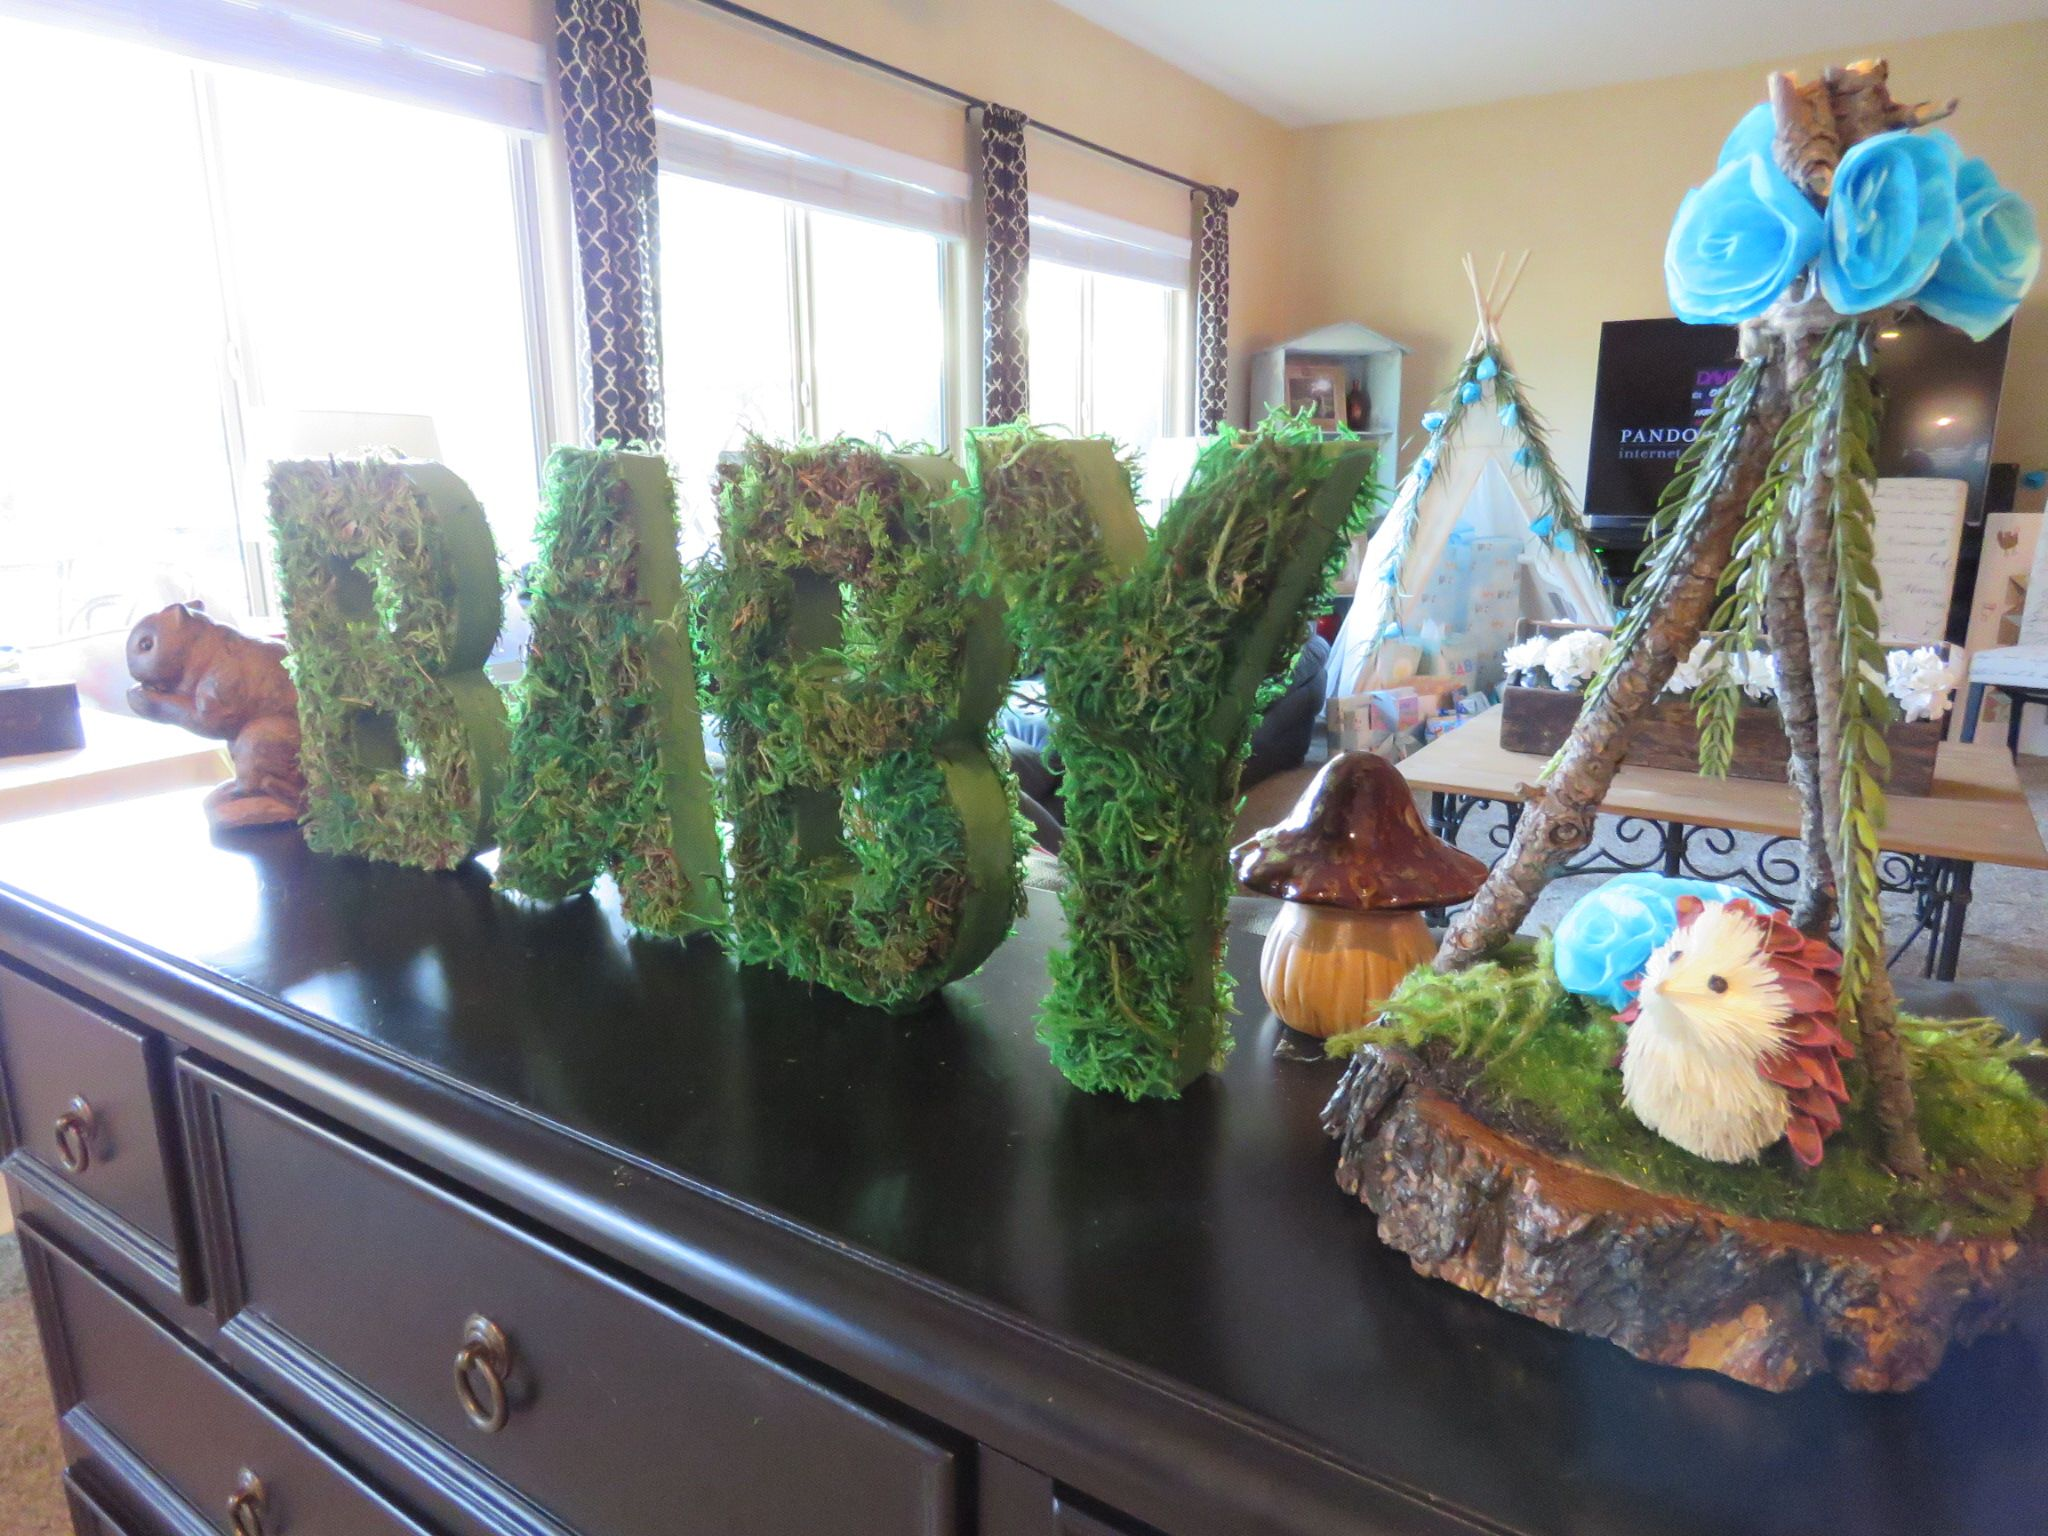 Mossy Letters For Woodland Baby Shower  Party Stuff